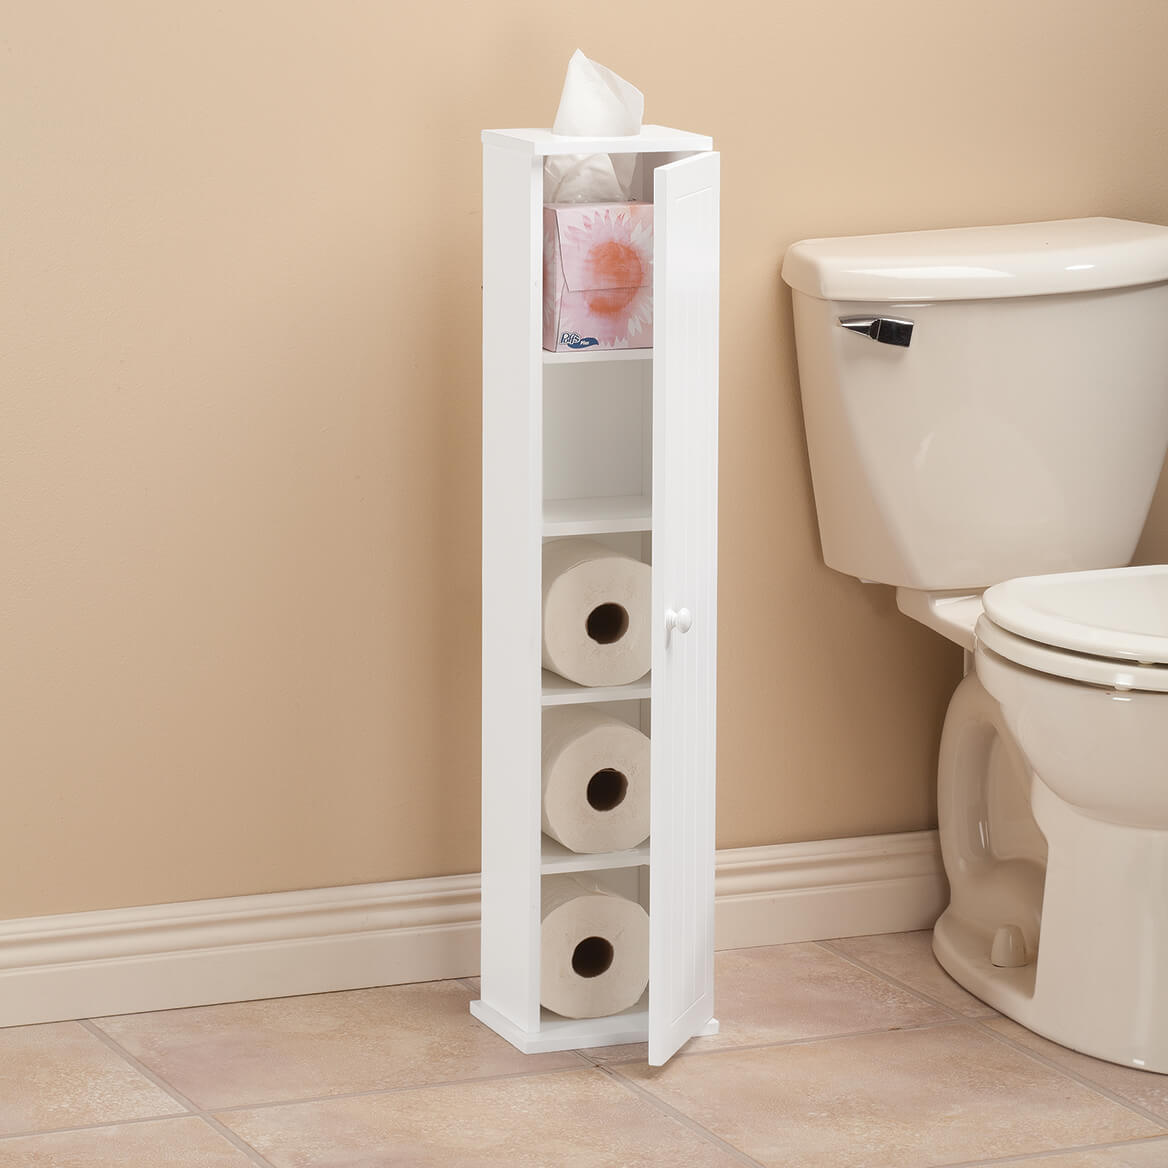 Ambrose Collection Mega Roll Toilet Tissue Tower by OakRidge-366666